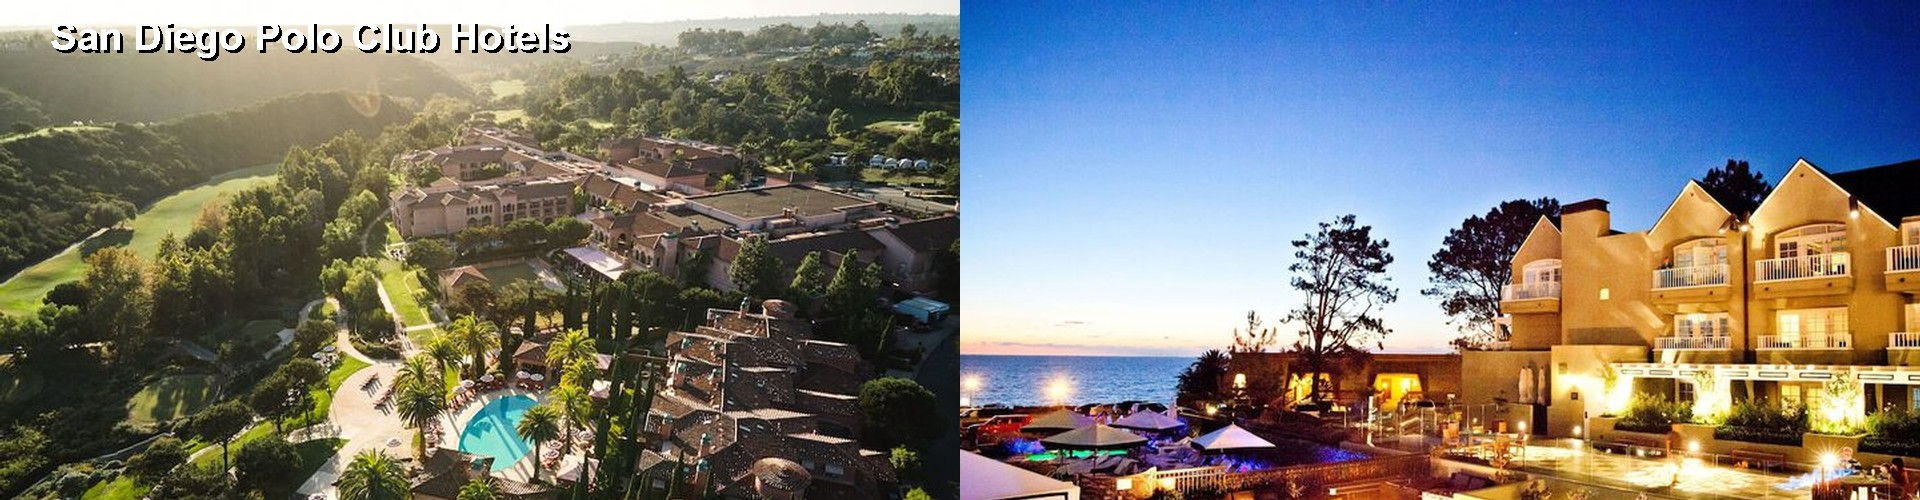 5 Best Hotels near San Diego Polo Club